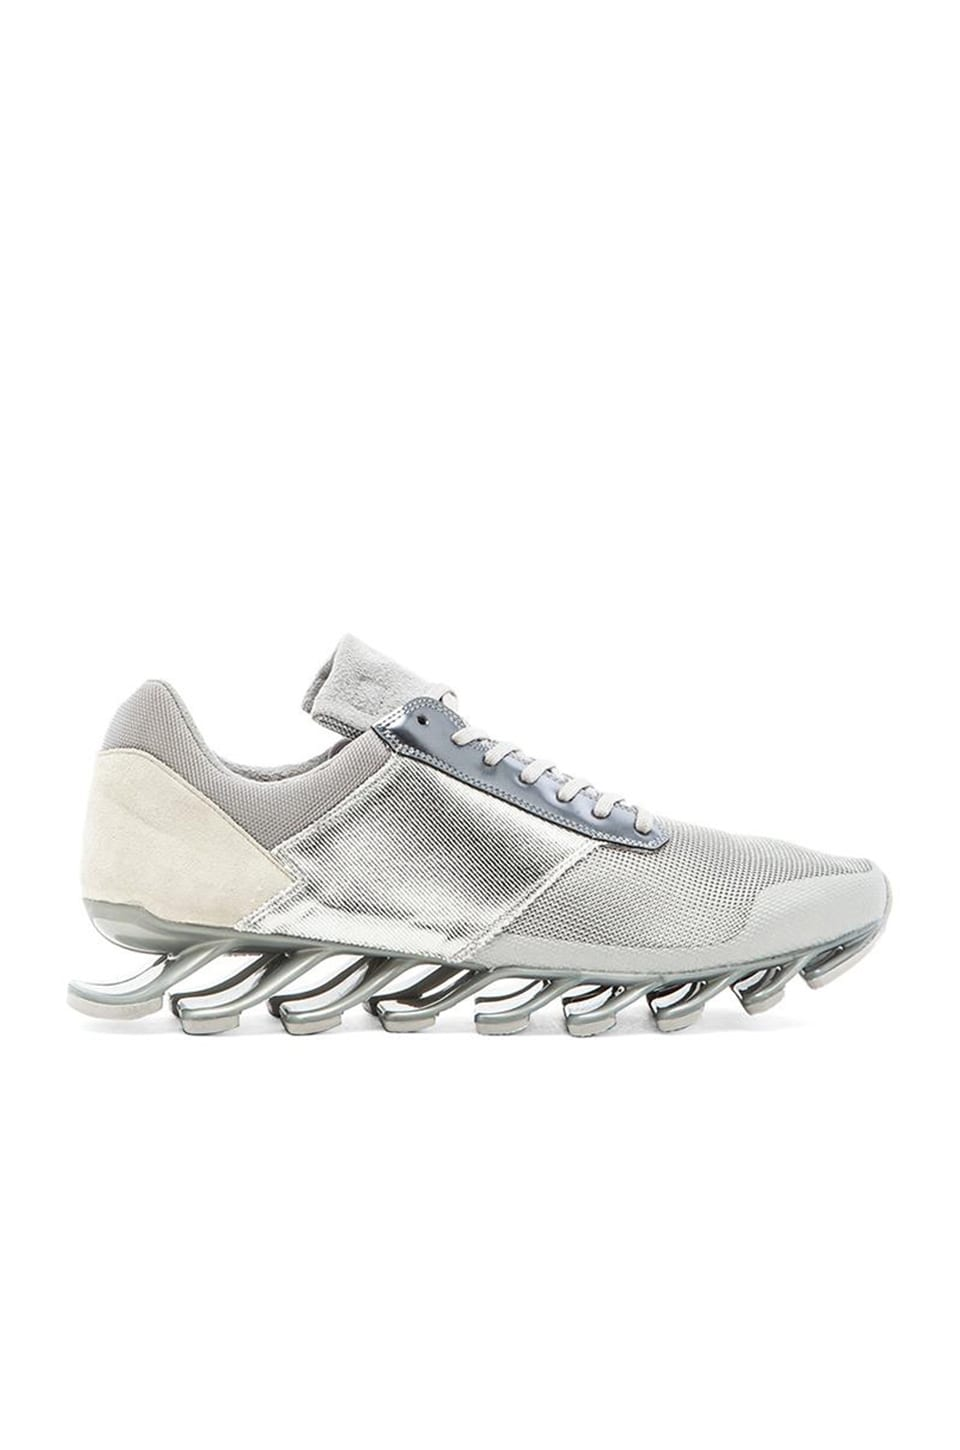 save off a61e9 a6a47 adidas by Rick Owens Springblade Low in Silver Met Silver ...